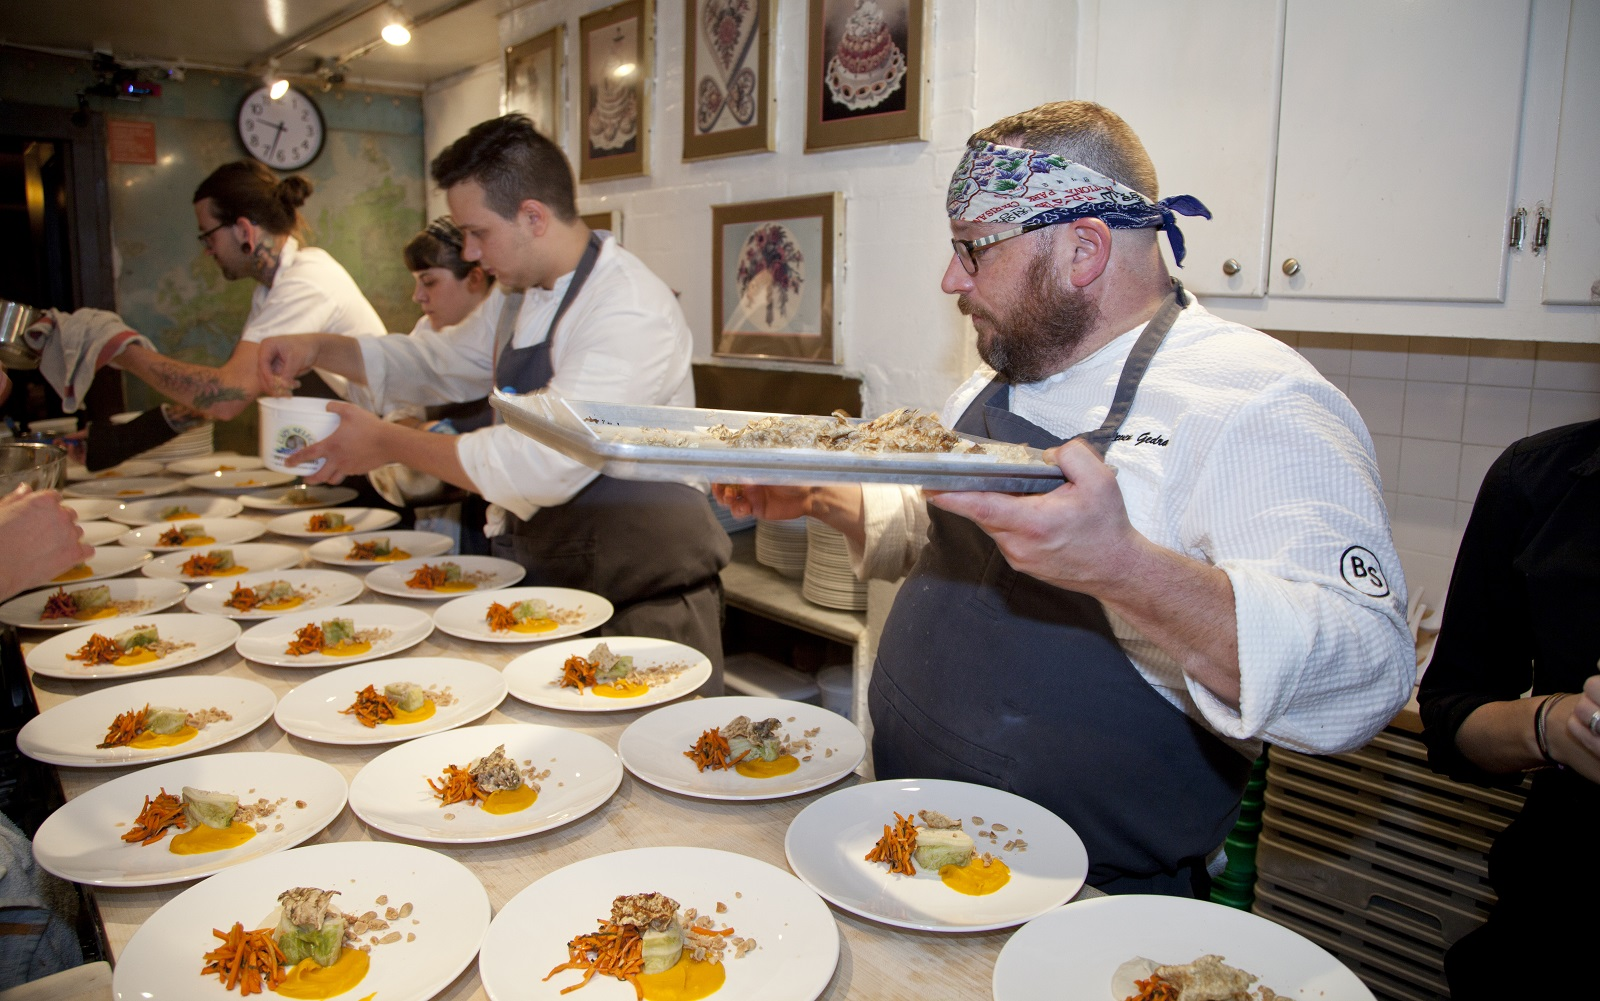 Chef Steve Gedra, right, helps his team plate food at the James Beard House. (Rina Oh/James Beard House)